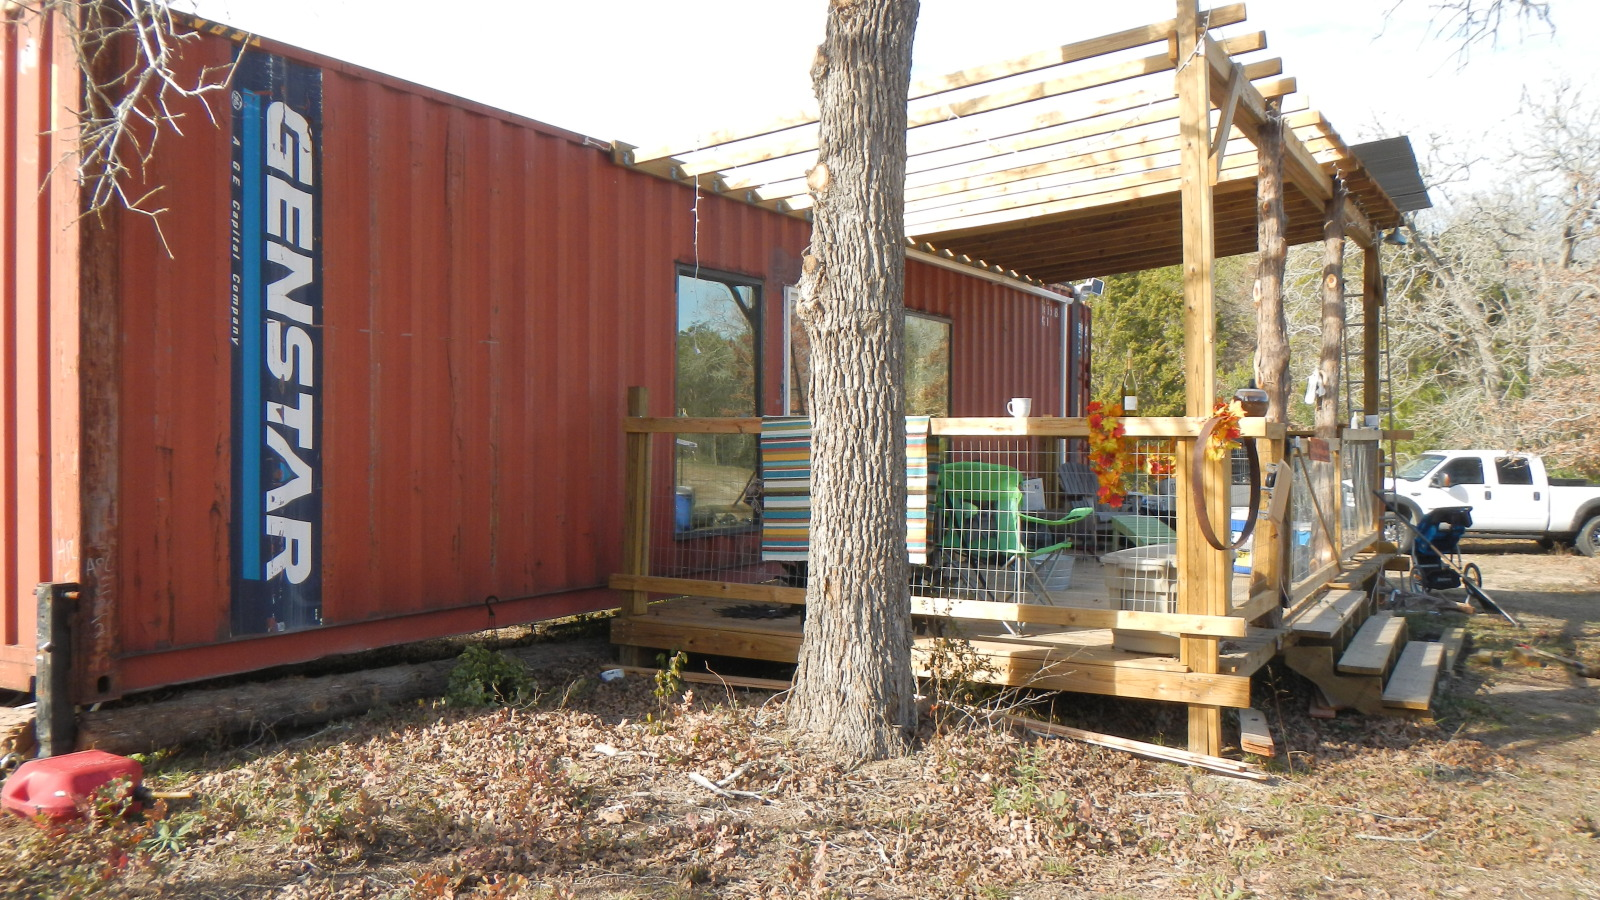 Shipping container homes 40ft shipping container family home wendy bowman fords prarie texas - Cargo container homes ...